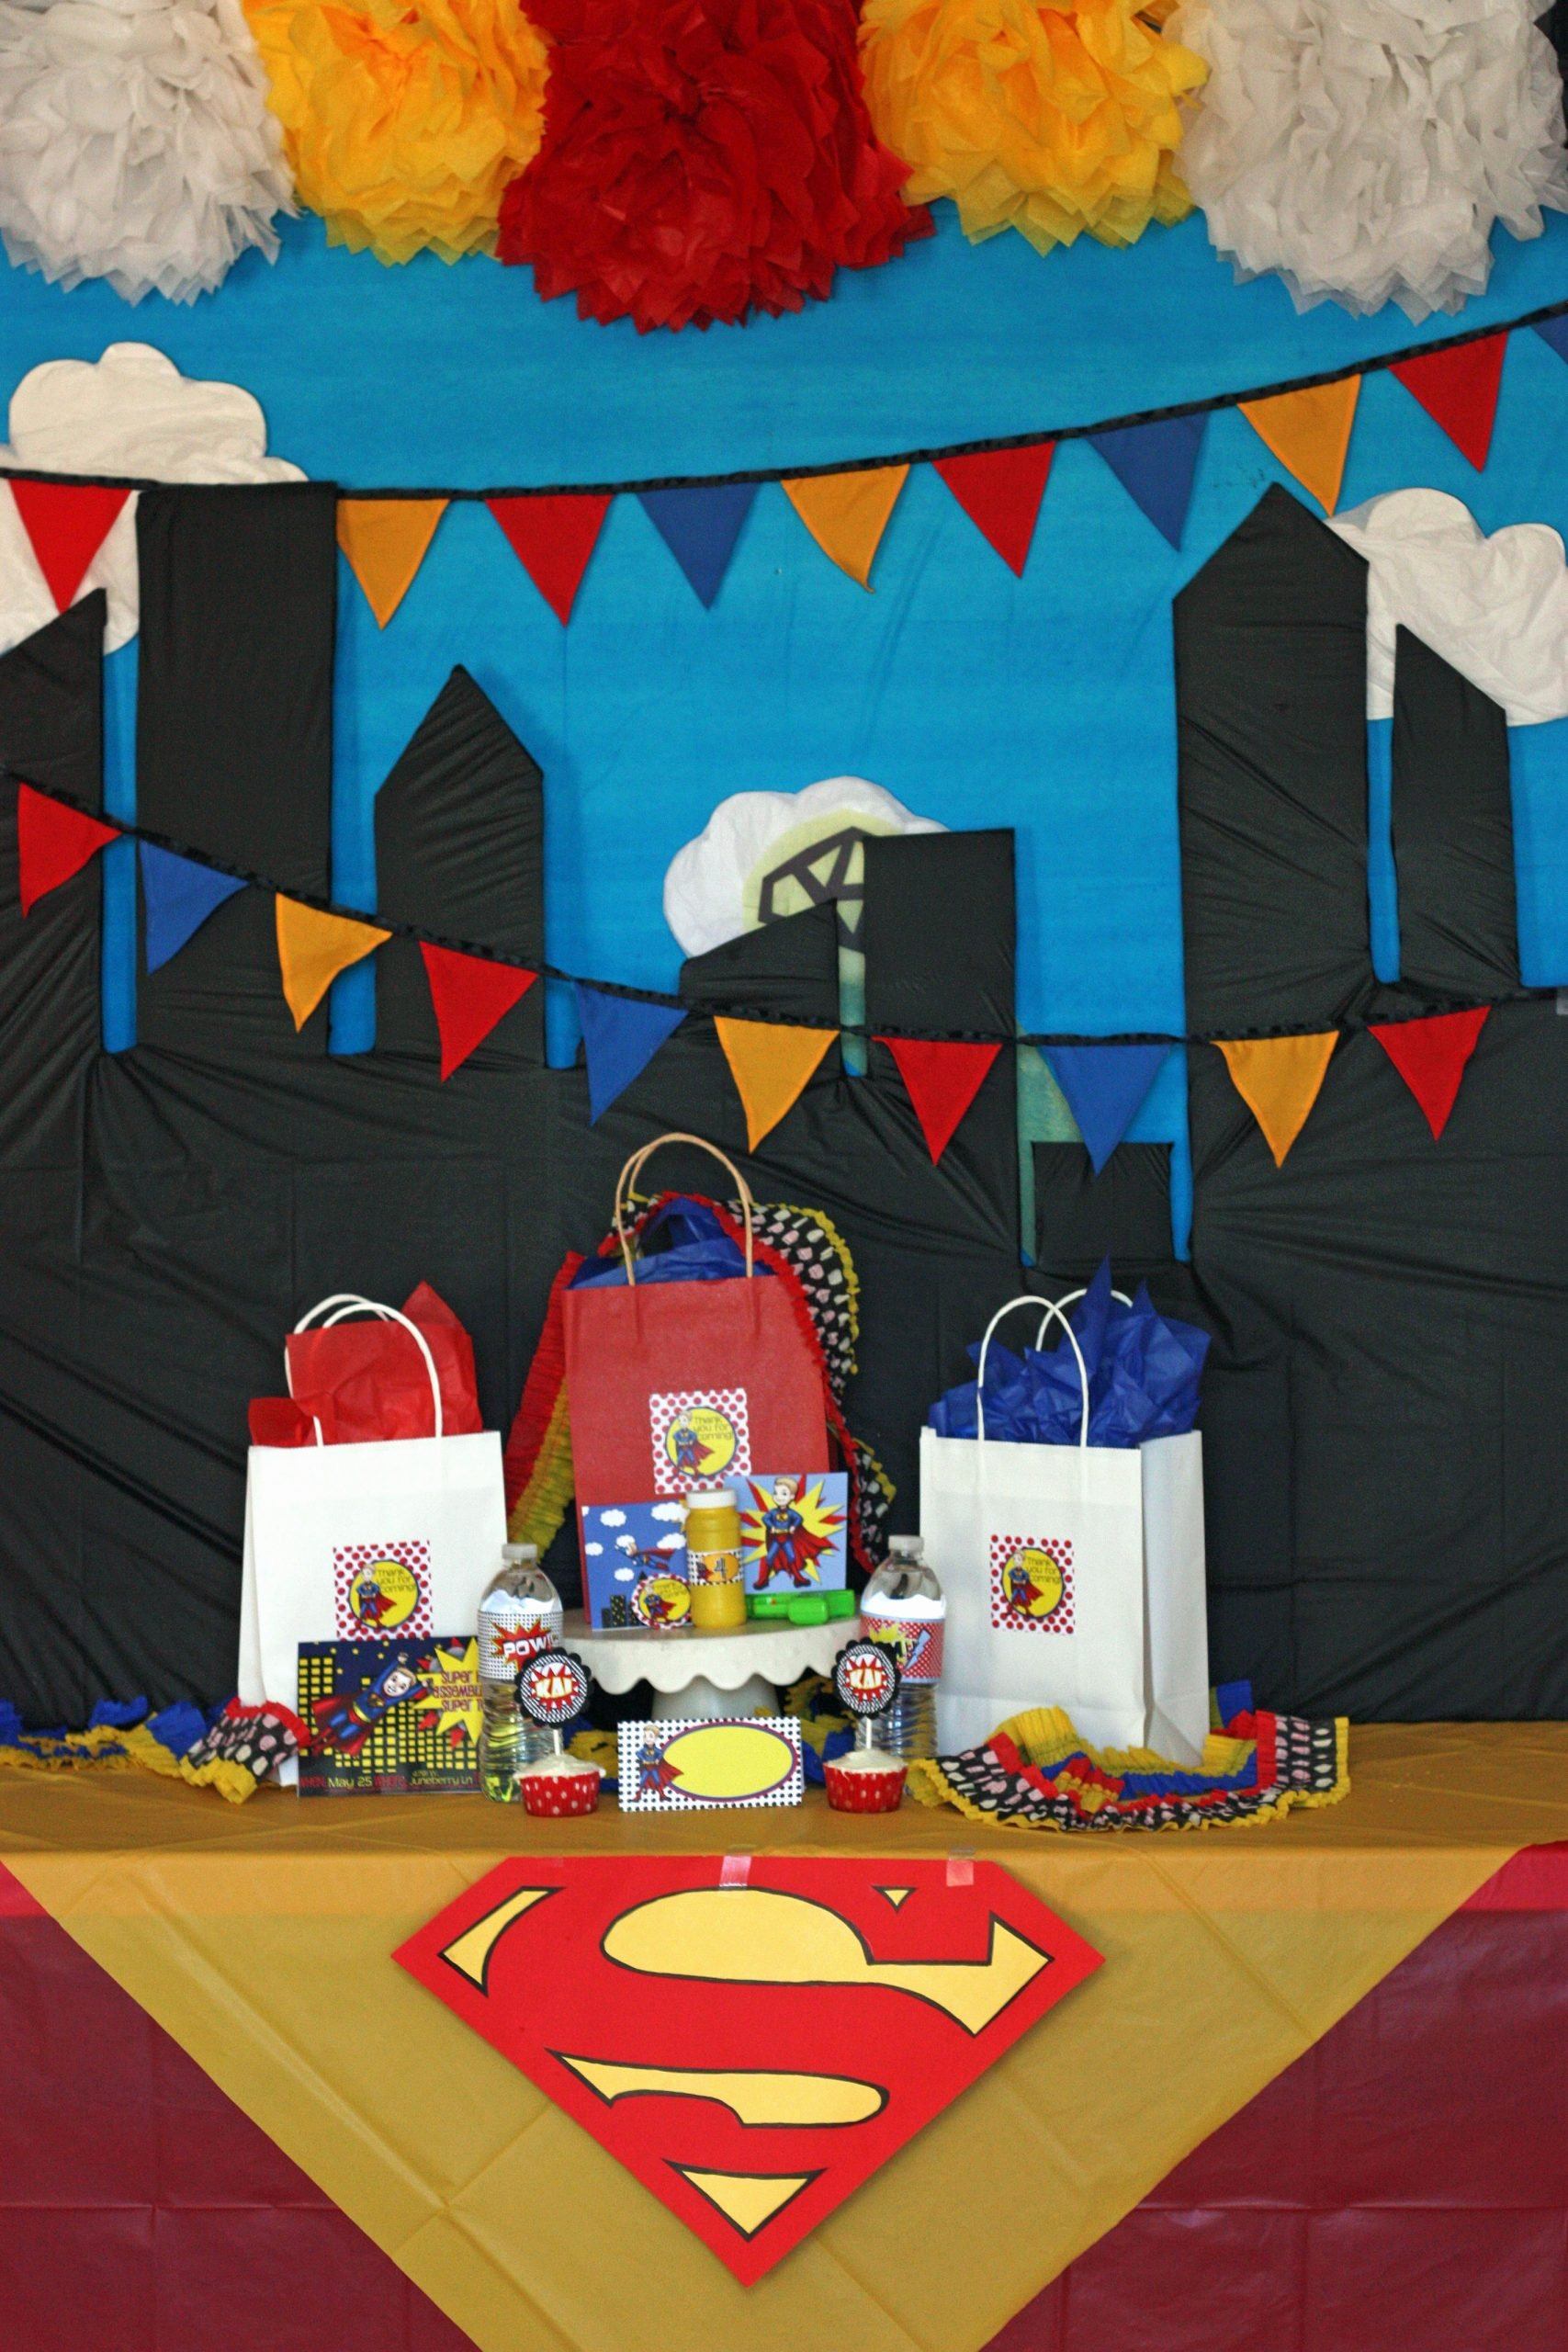 Superman Birthday Decoration Ideas New Superhero Party Backdrop with Swag Bags and Custom Made